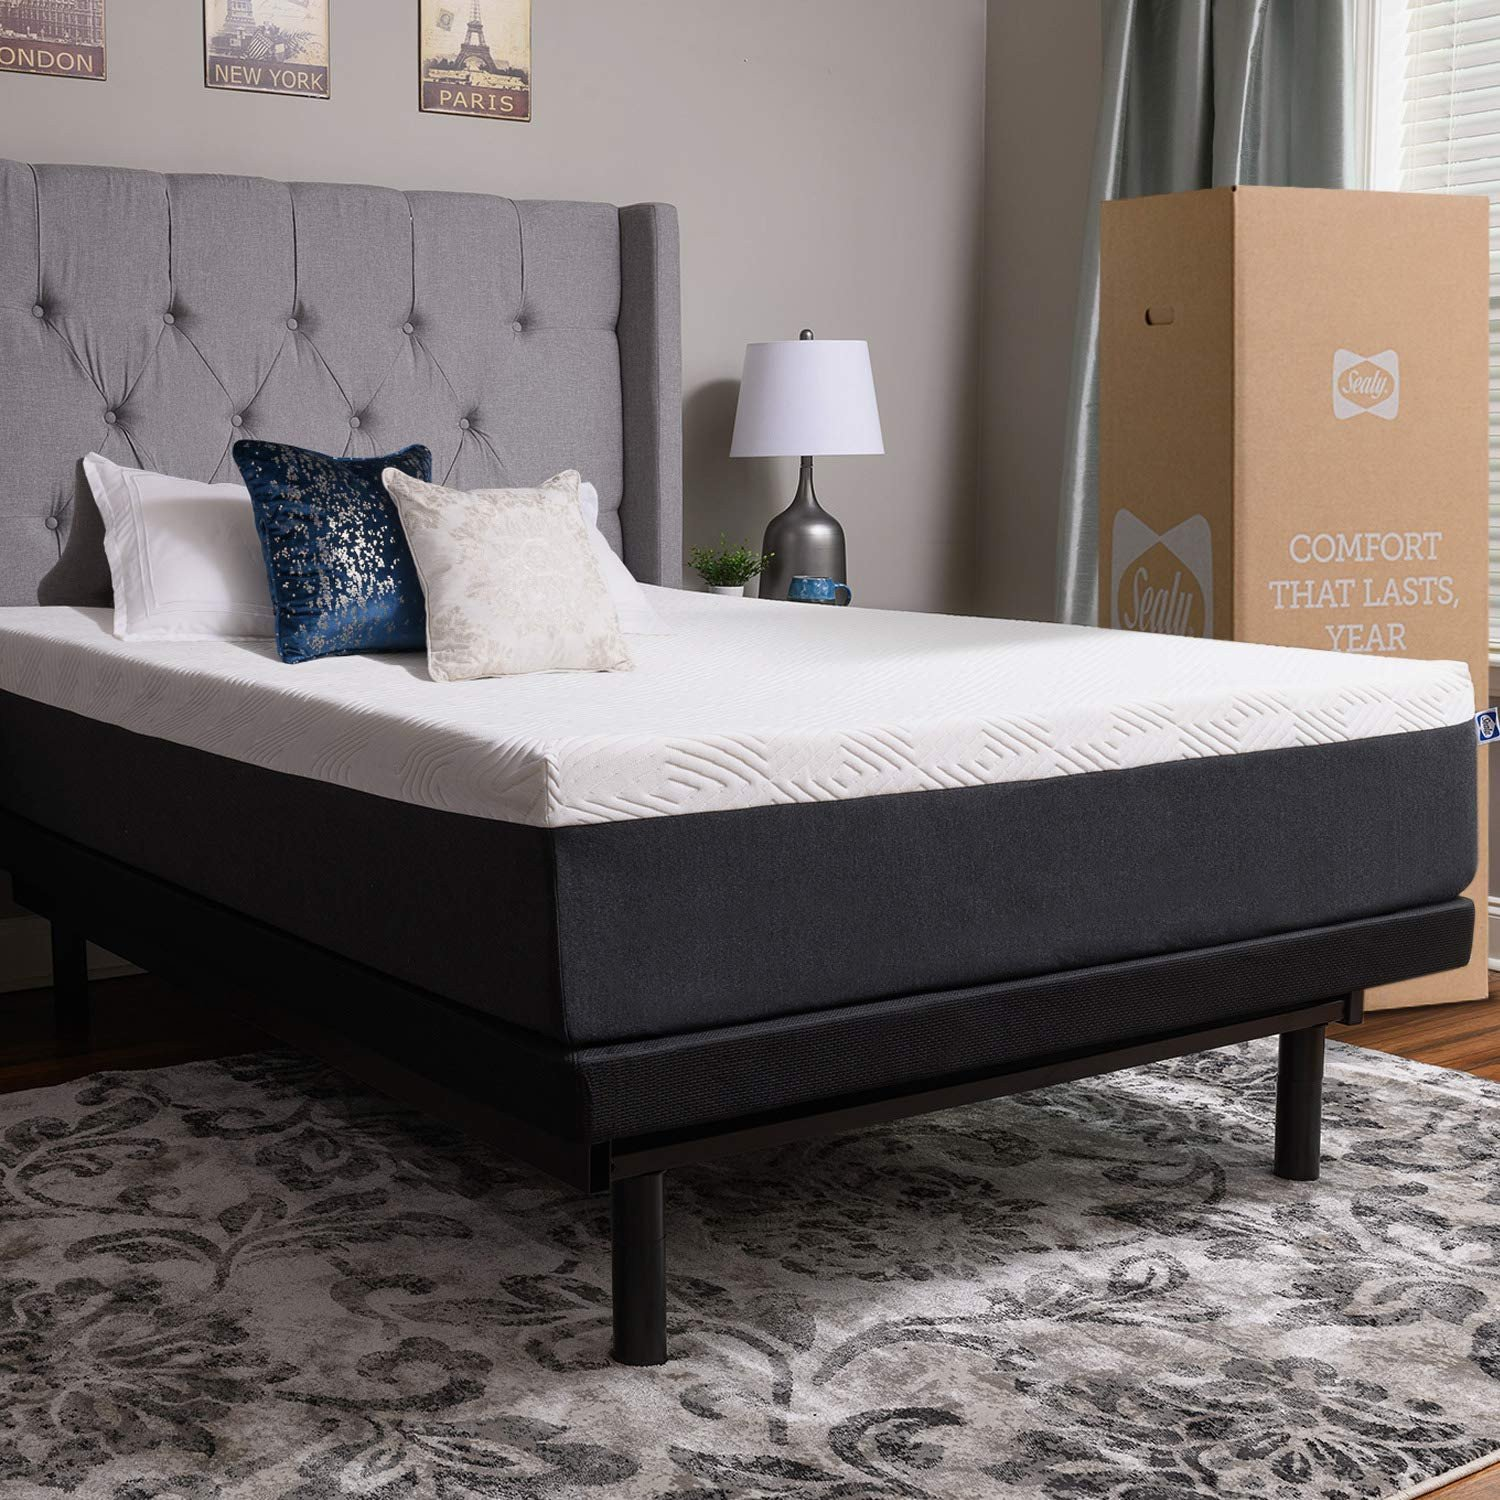 Bob Discount Furniture Bedroom Set Elegant Sealy 12 Inch Memory Foam Bed In A Box Adaptive fort Layers Medium Firm Feel Queen